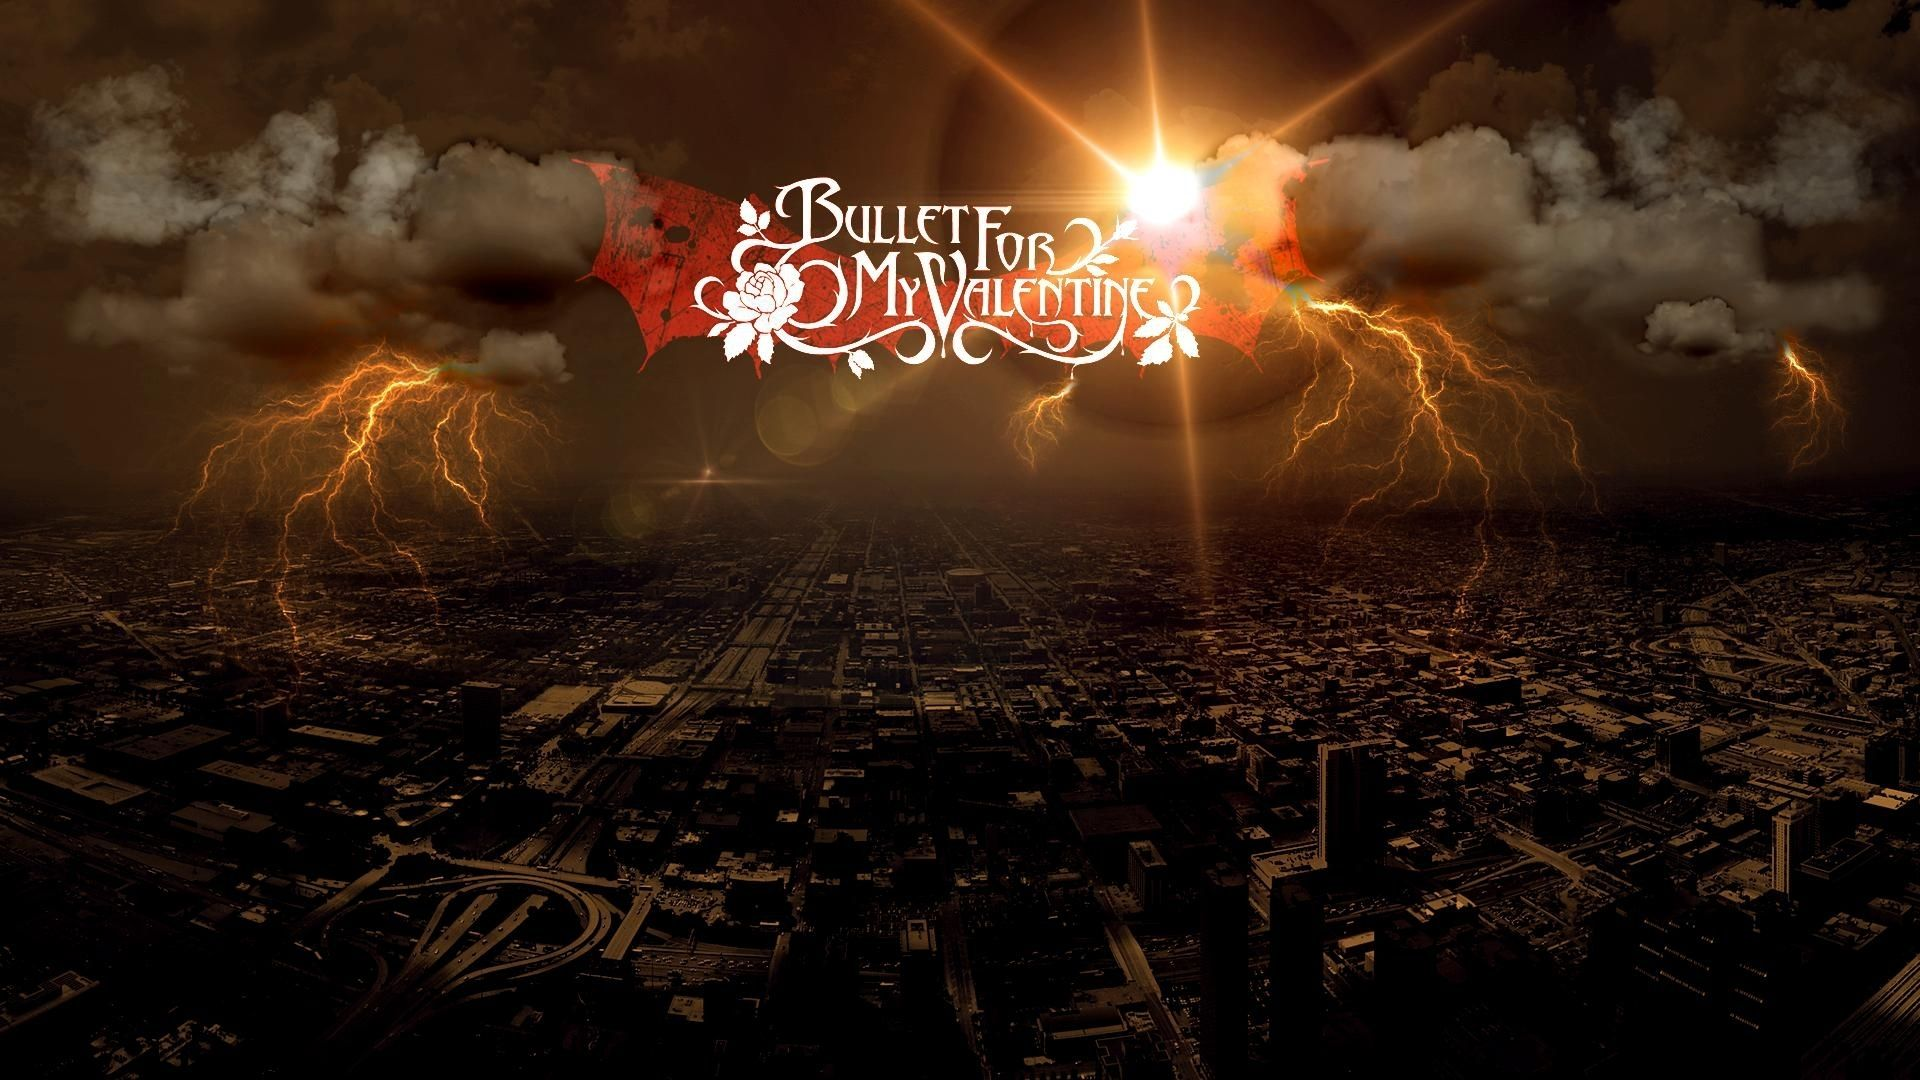 10 Most Popular Bullet For My Valentine Wallpaper Full Hd 1080p For